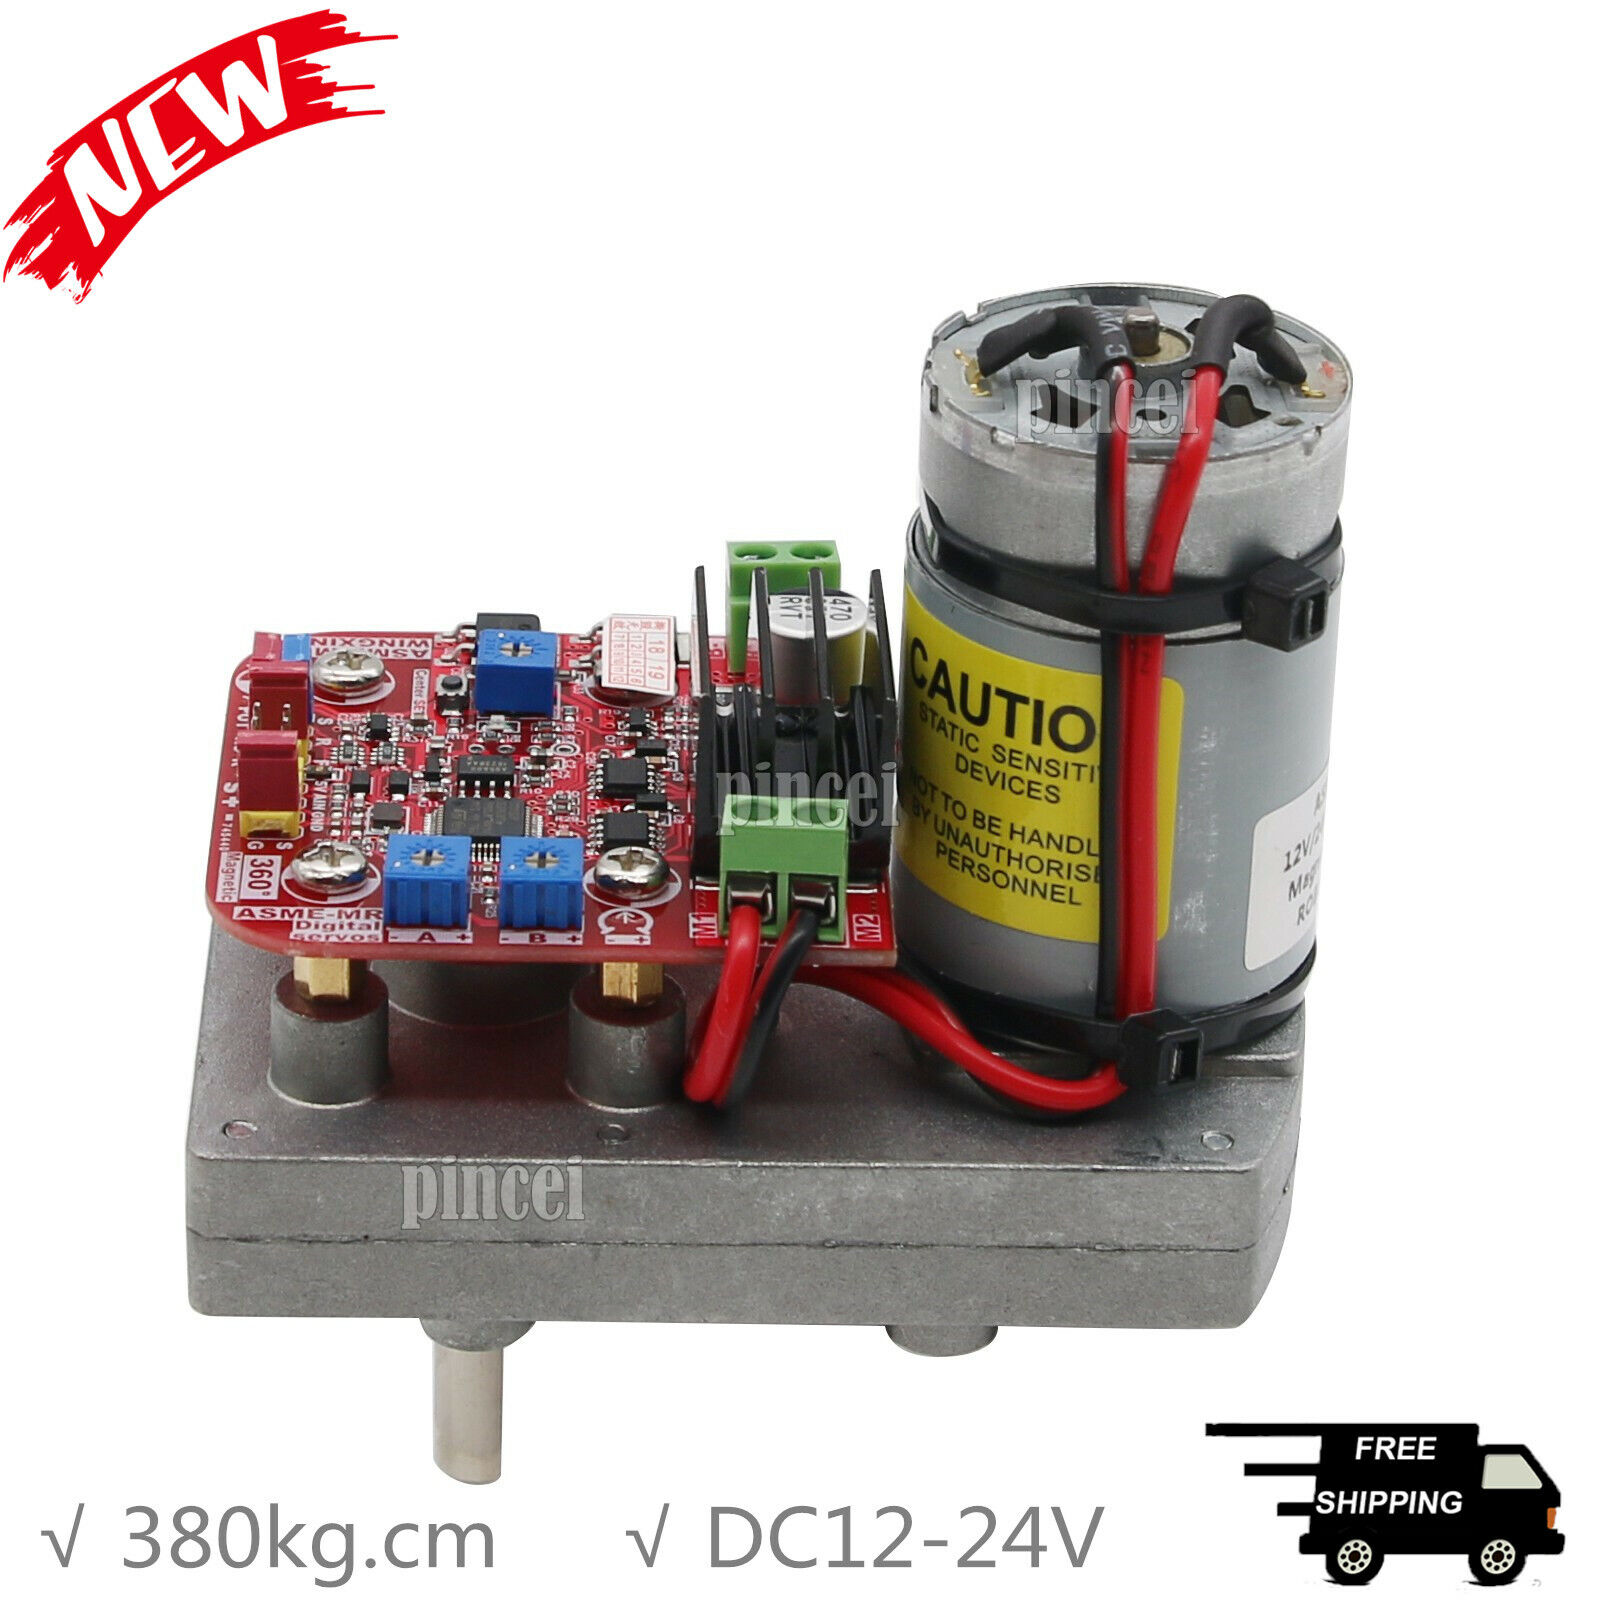 DC12-24V 380kg.cm  High Torque Servo 360 Degree Non-Contact Magnetictuttiy Encoded  Ultimo 2018